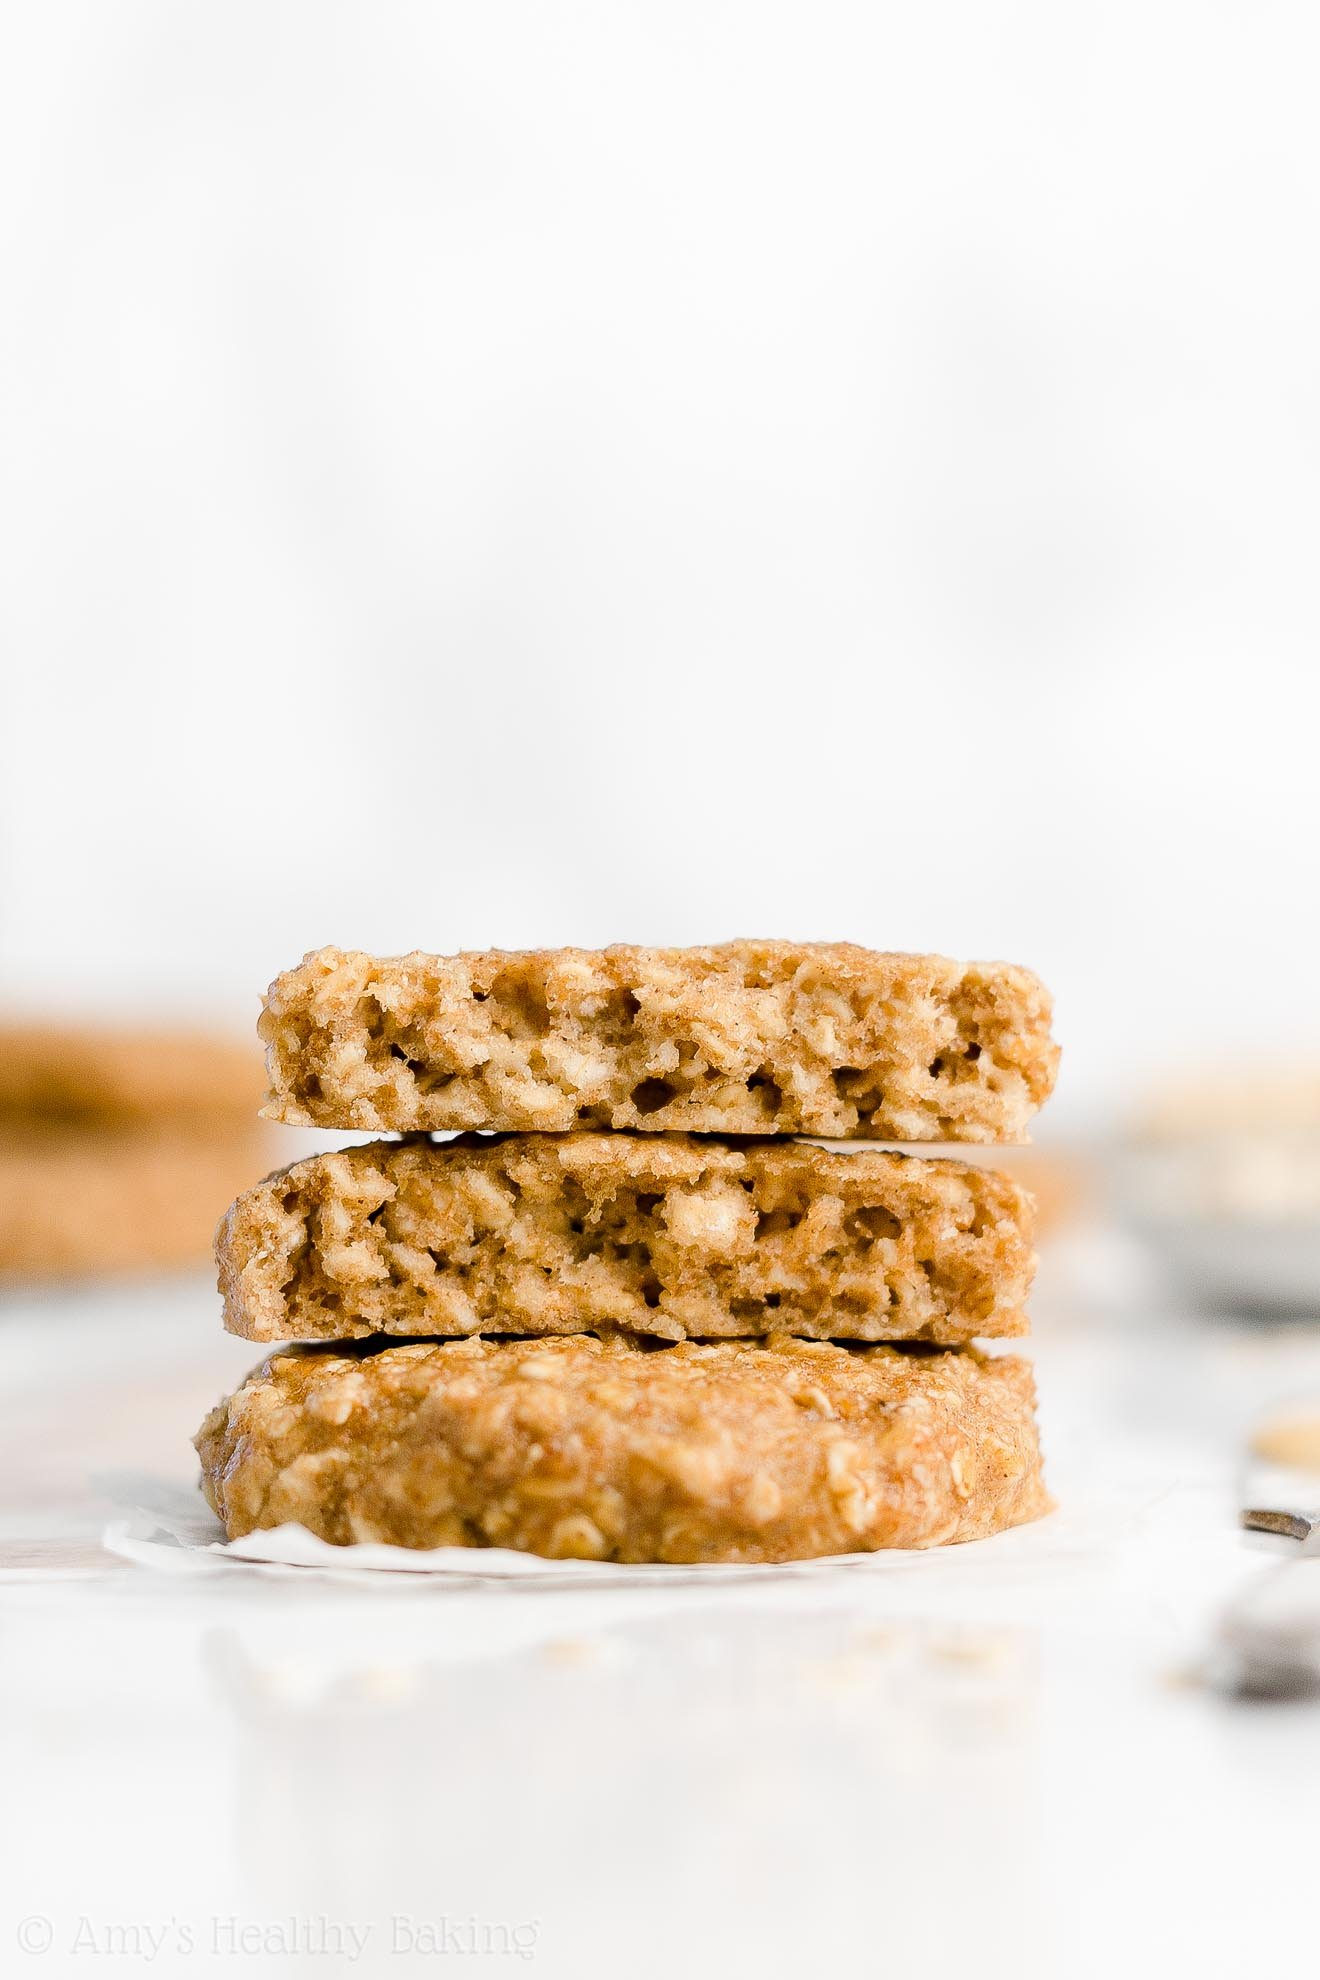 Easy Healthy Clean Eating Chewy Peanut Butter Banana Oatmeal Breakfast Cookies